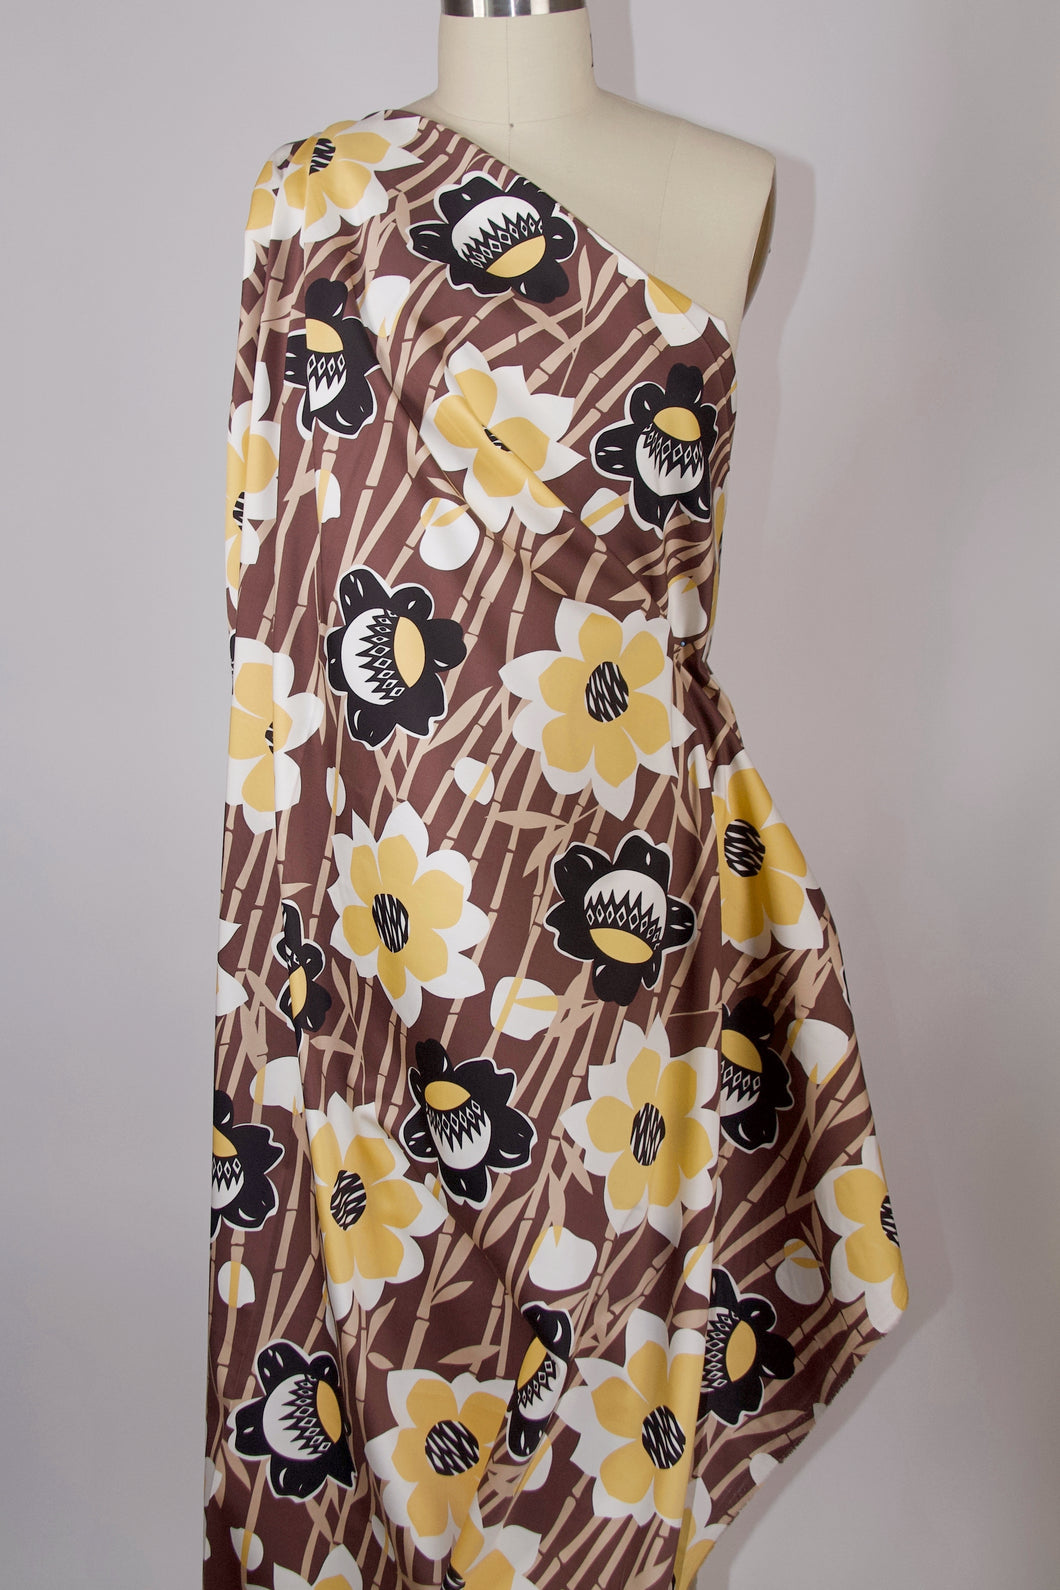 Bamboo Dreams Mod Floral Cotton Stretch Sateen - Browns/Yellow/Black/White